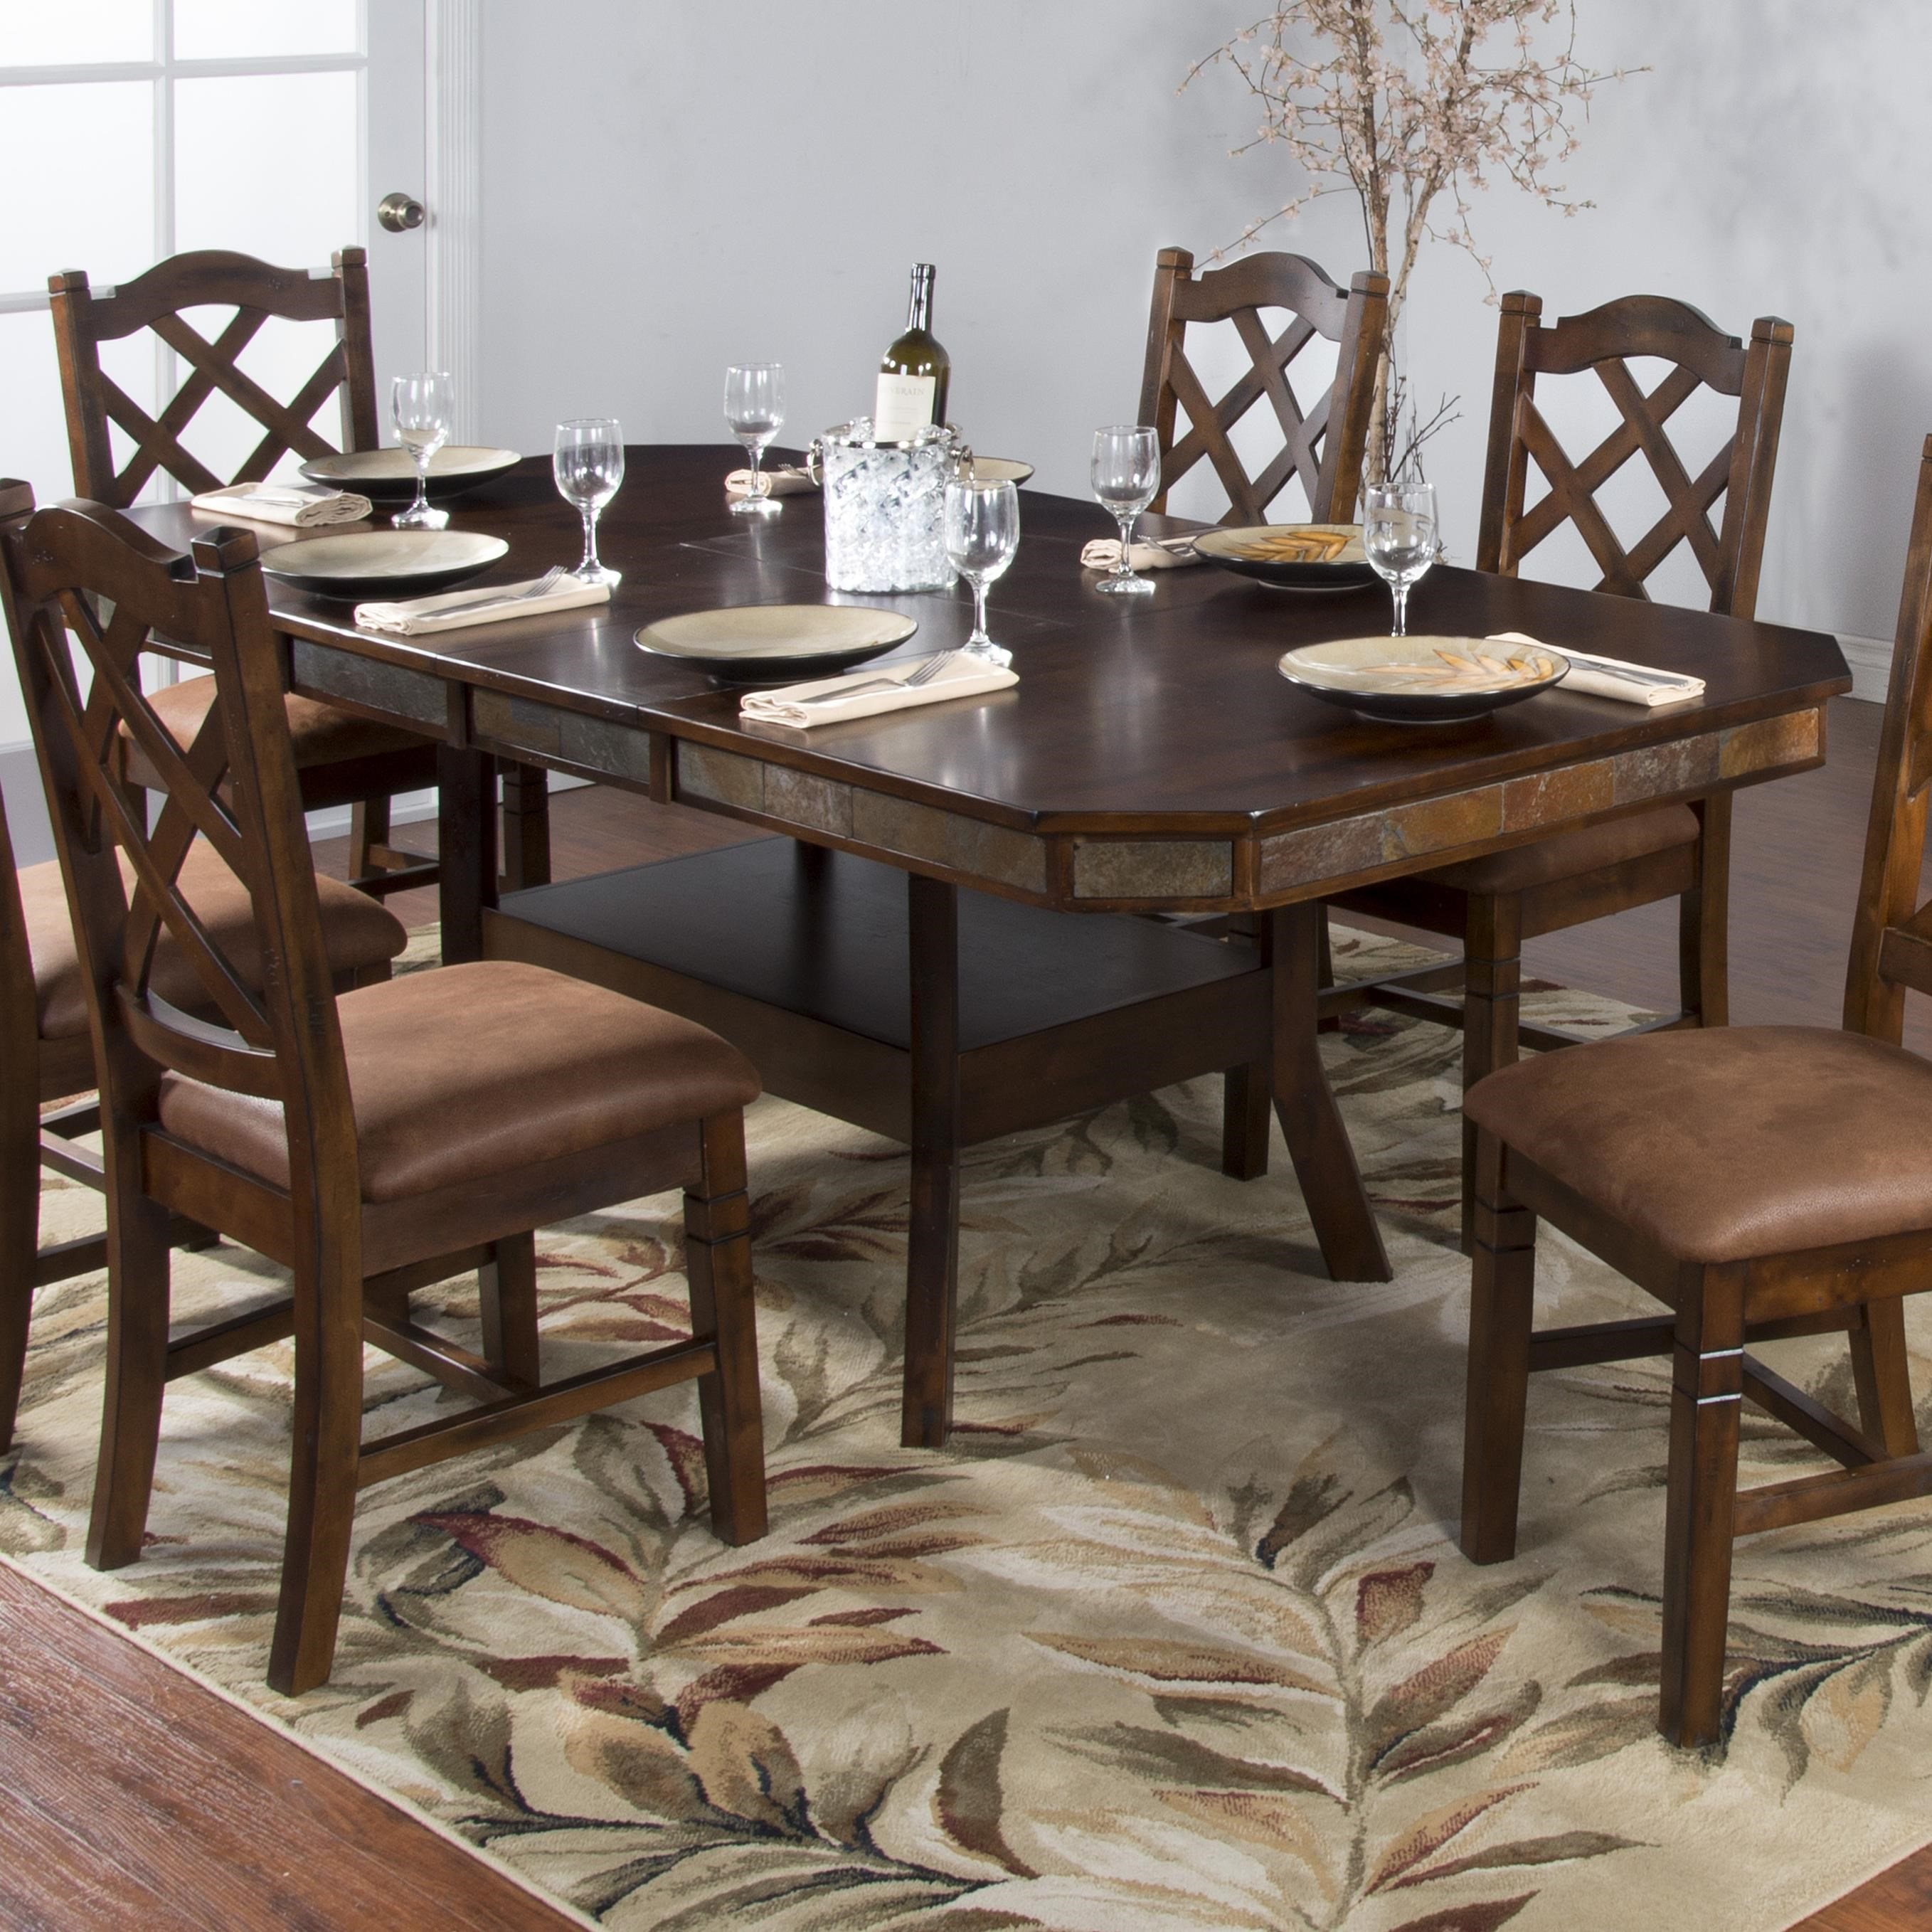 Amazing Sunny Designs Santa Fe Adjustable Height Dining Table W/ 2 Butterfly Leaves